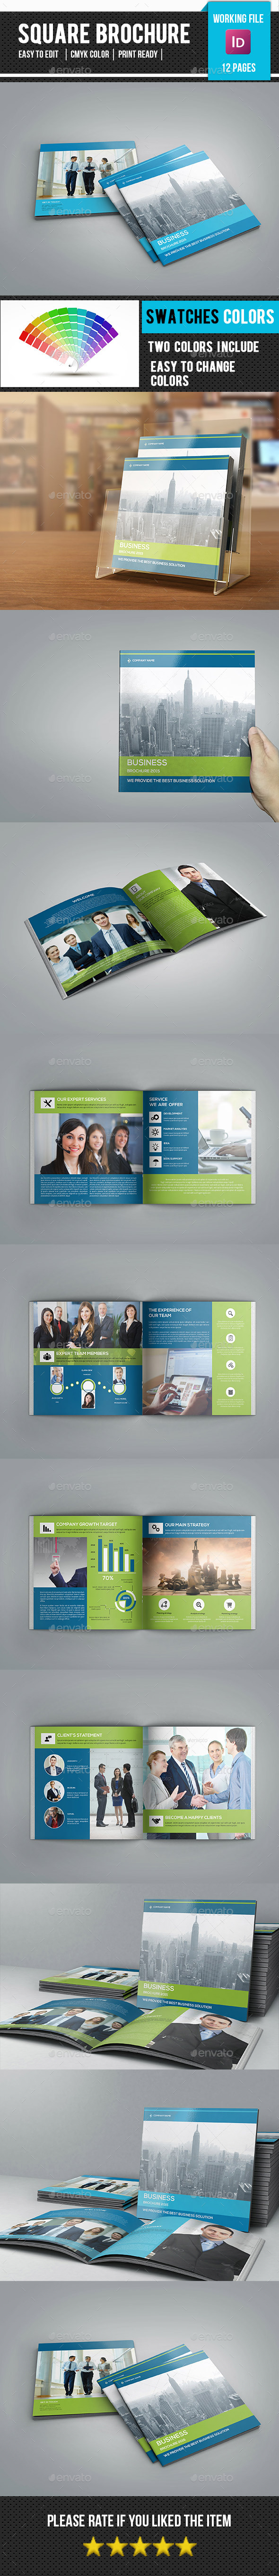 Corporate Square Brochure-V72 - Corporate Brochures